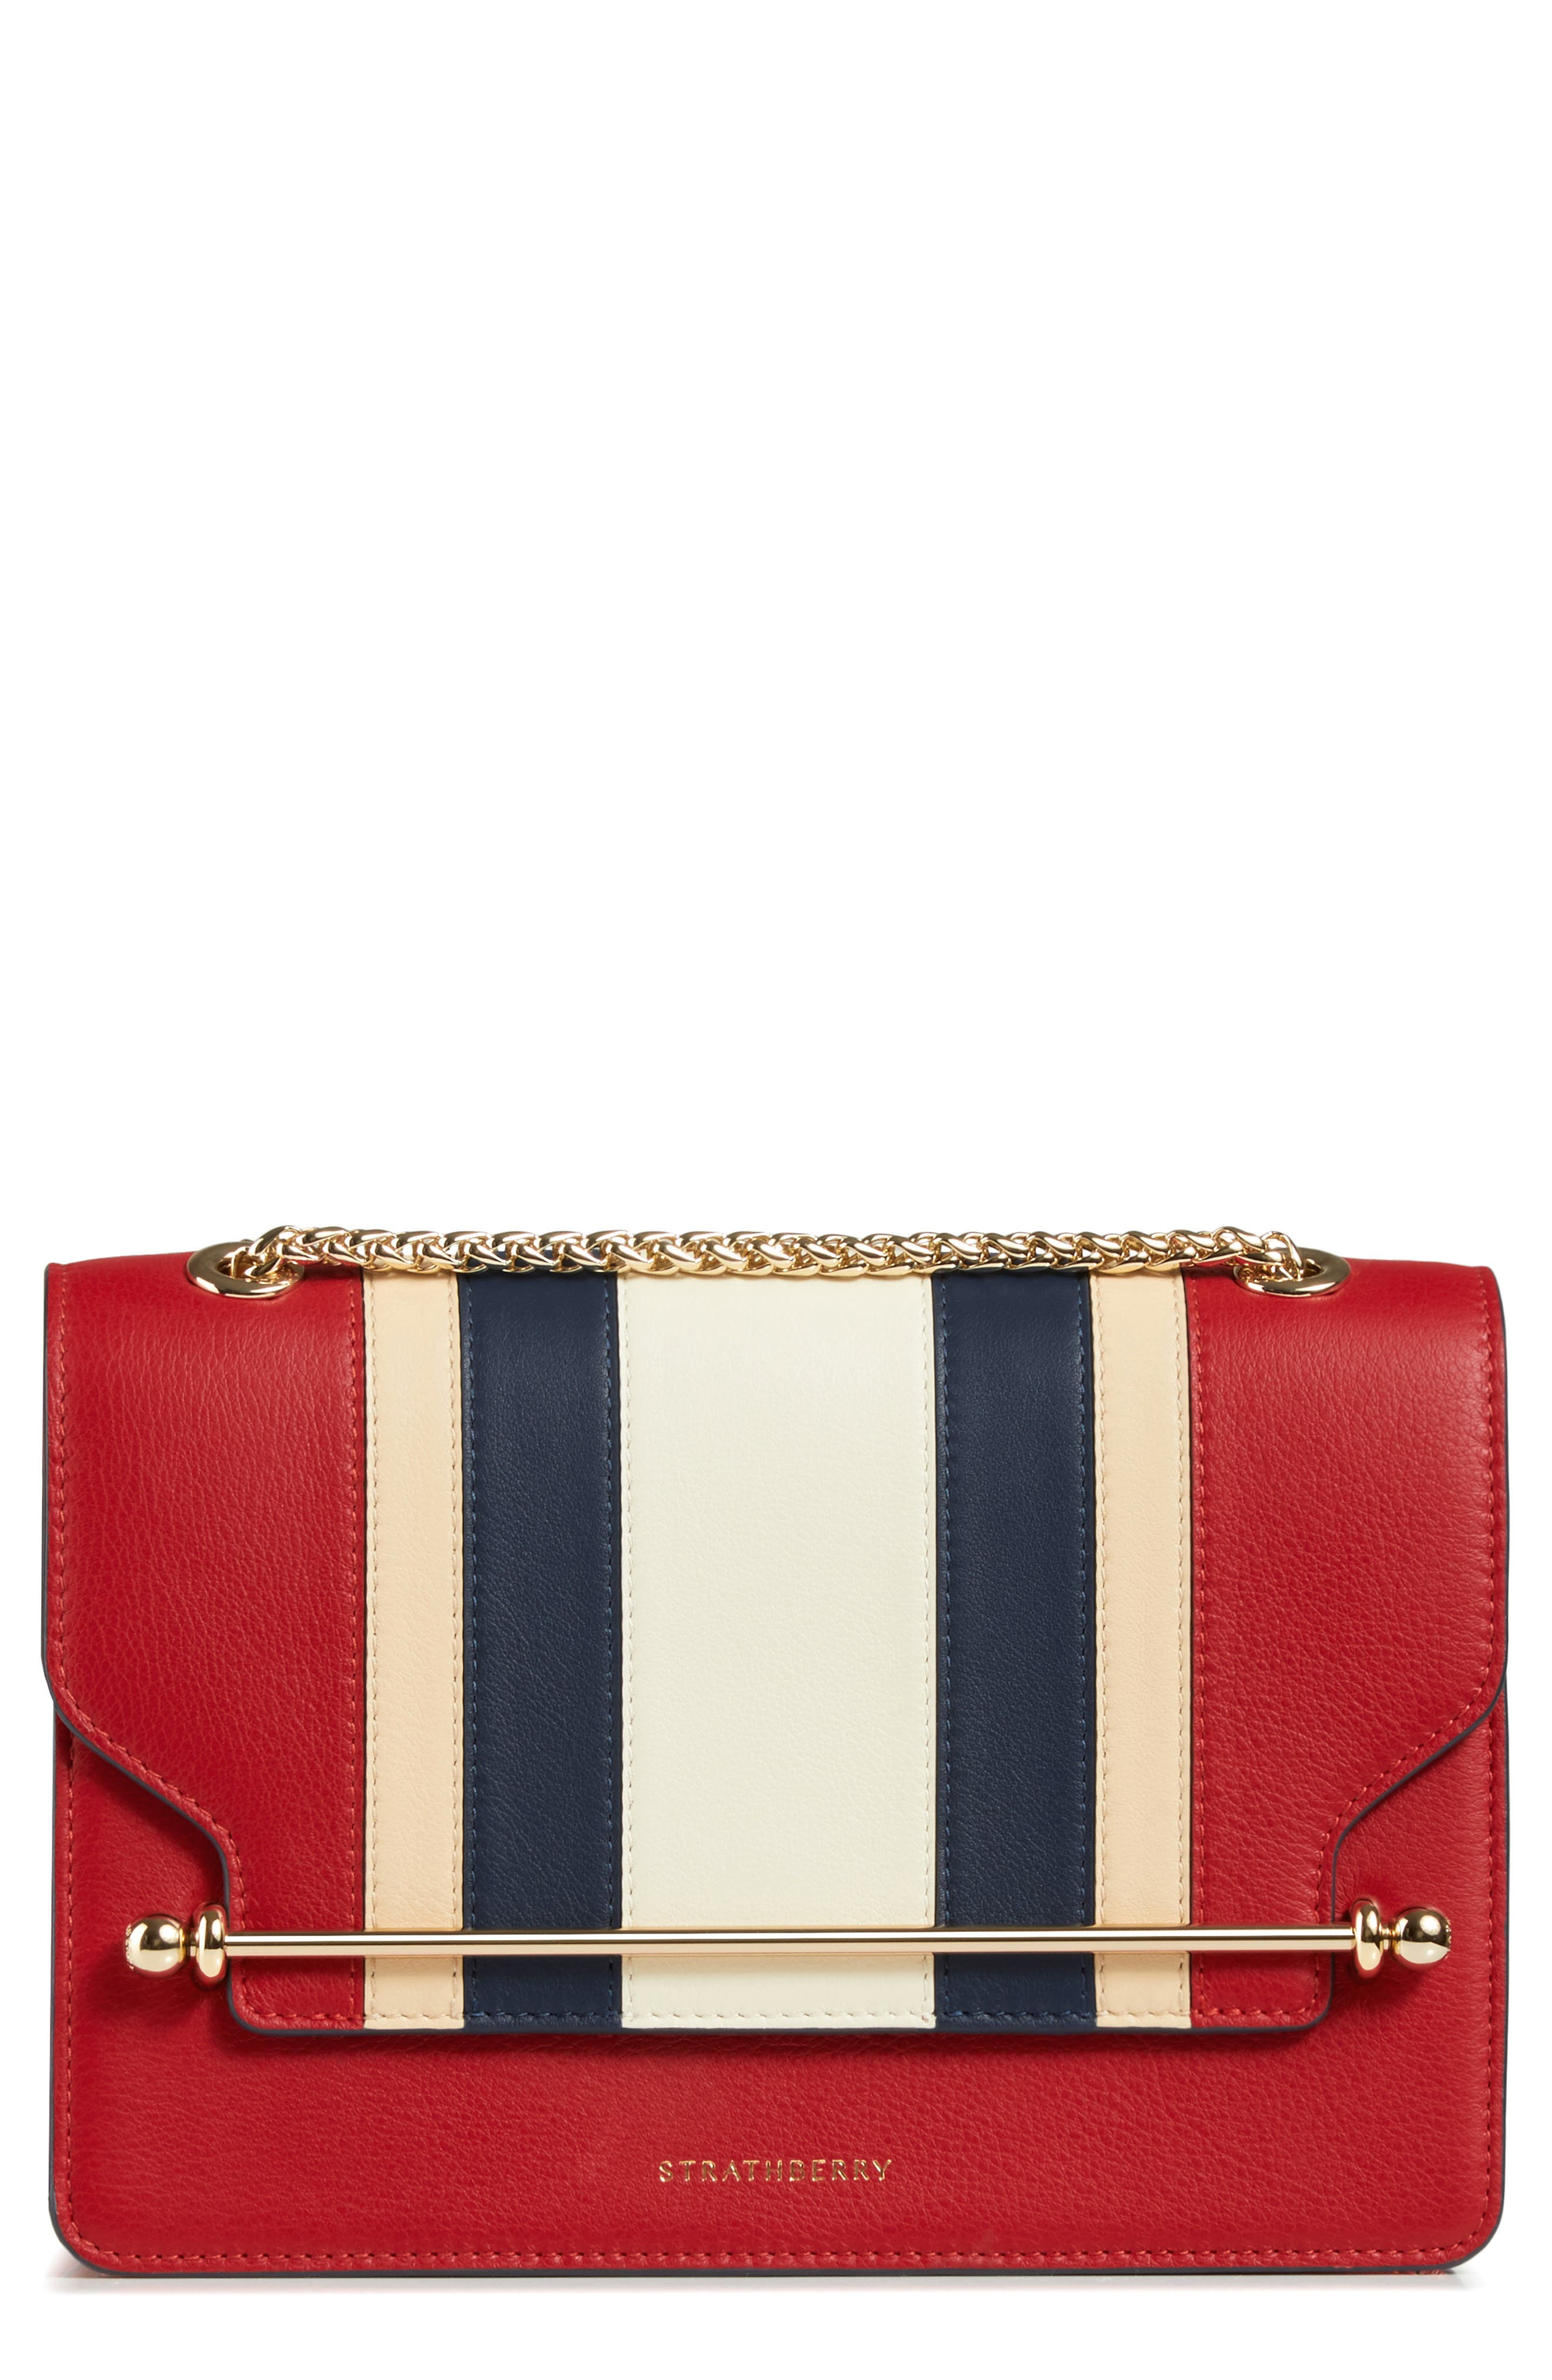 East/West Stripe Leather Crossbody Bag,                         Main,                         color, 600